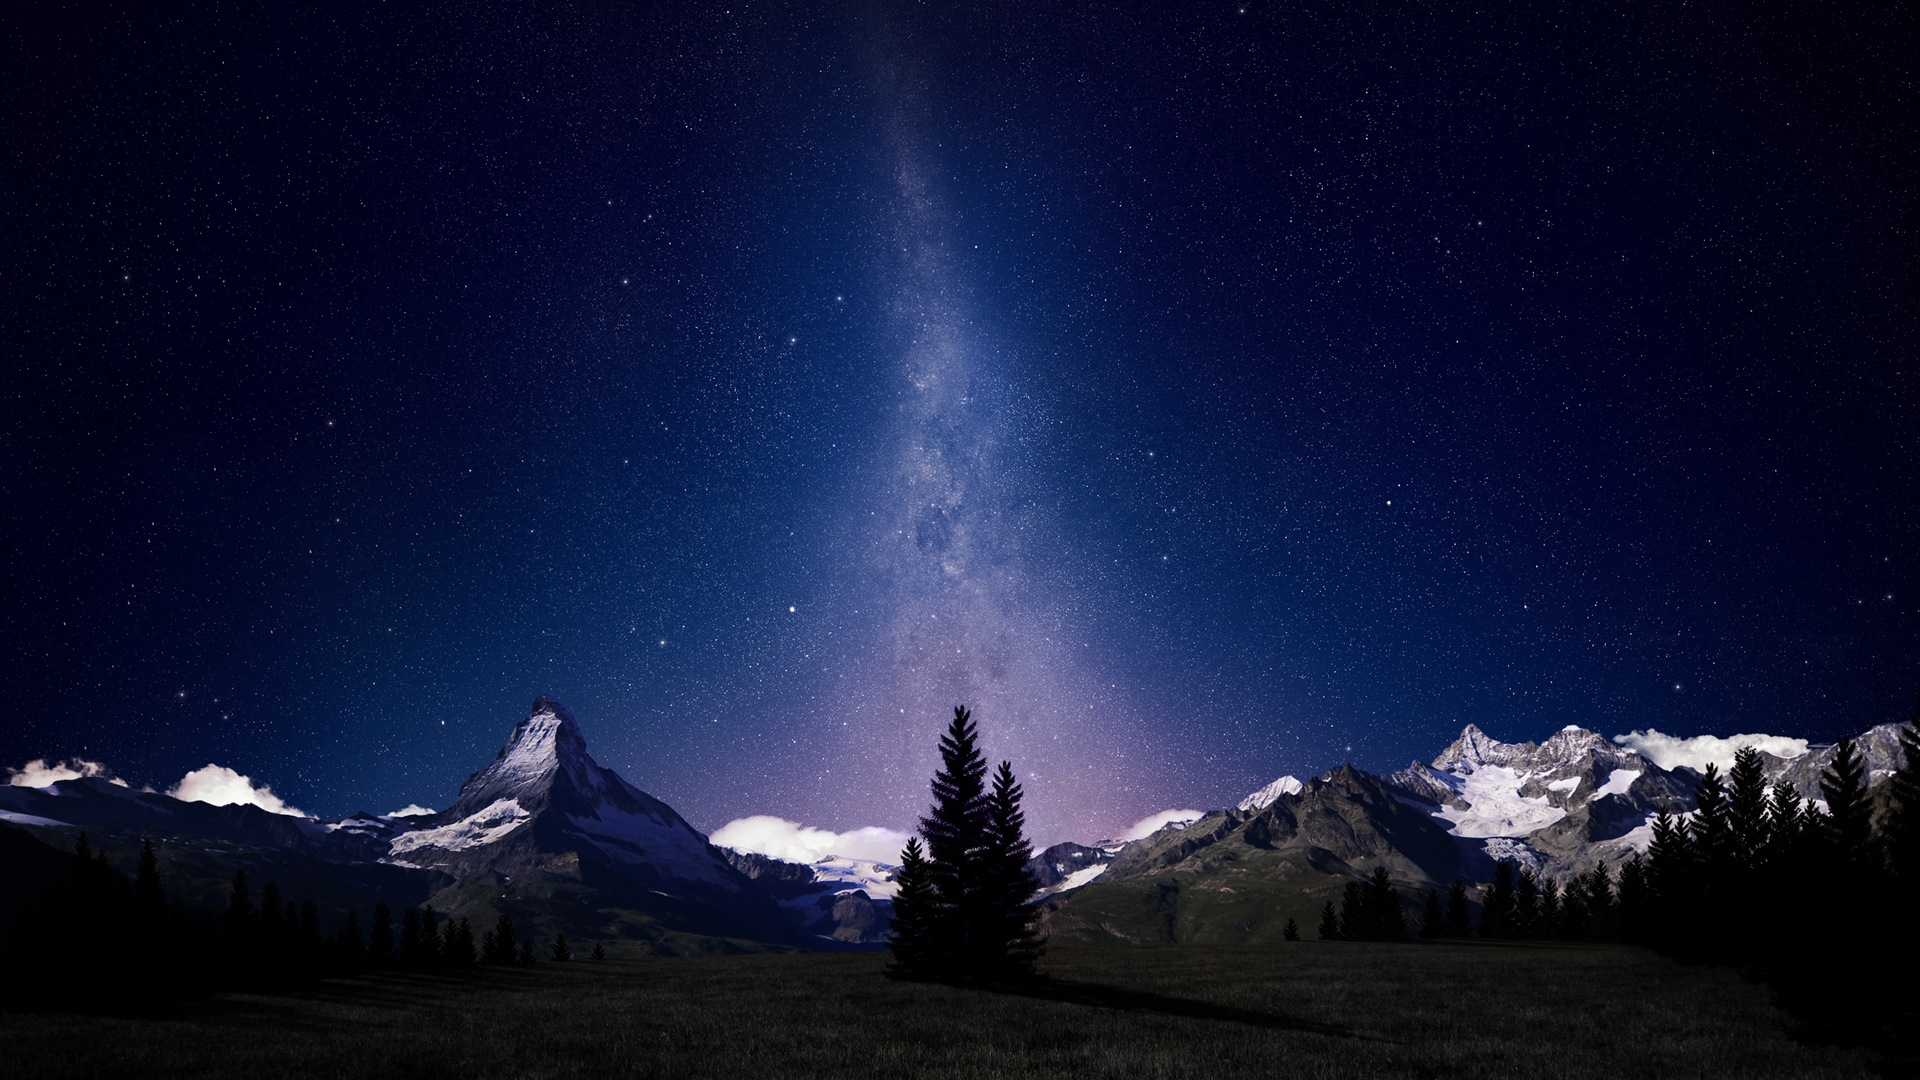 Stunning Milky Way Wallpaper